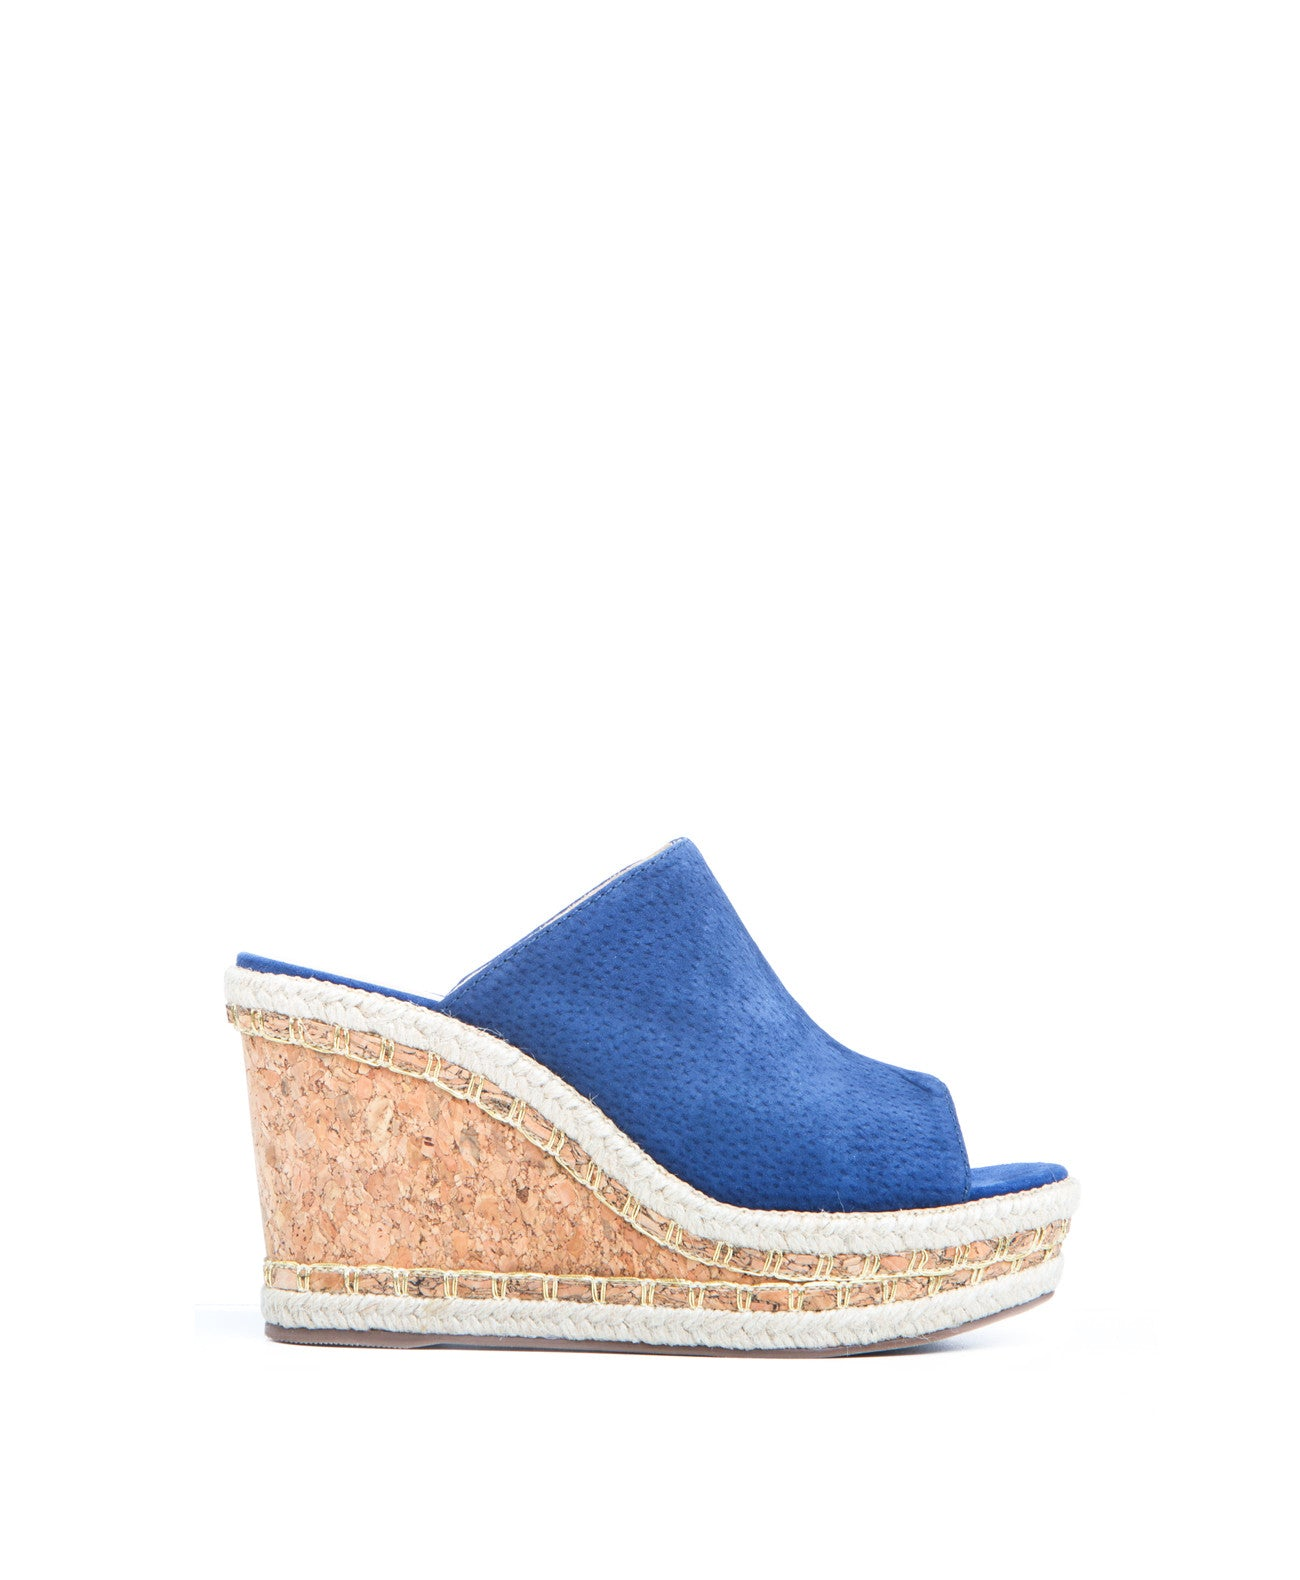 Vinnie Cork Wedge Sandal - Koko & Palenki - 1